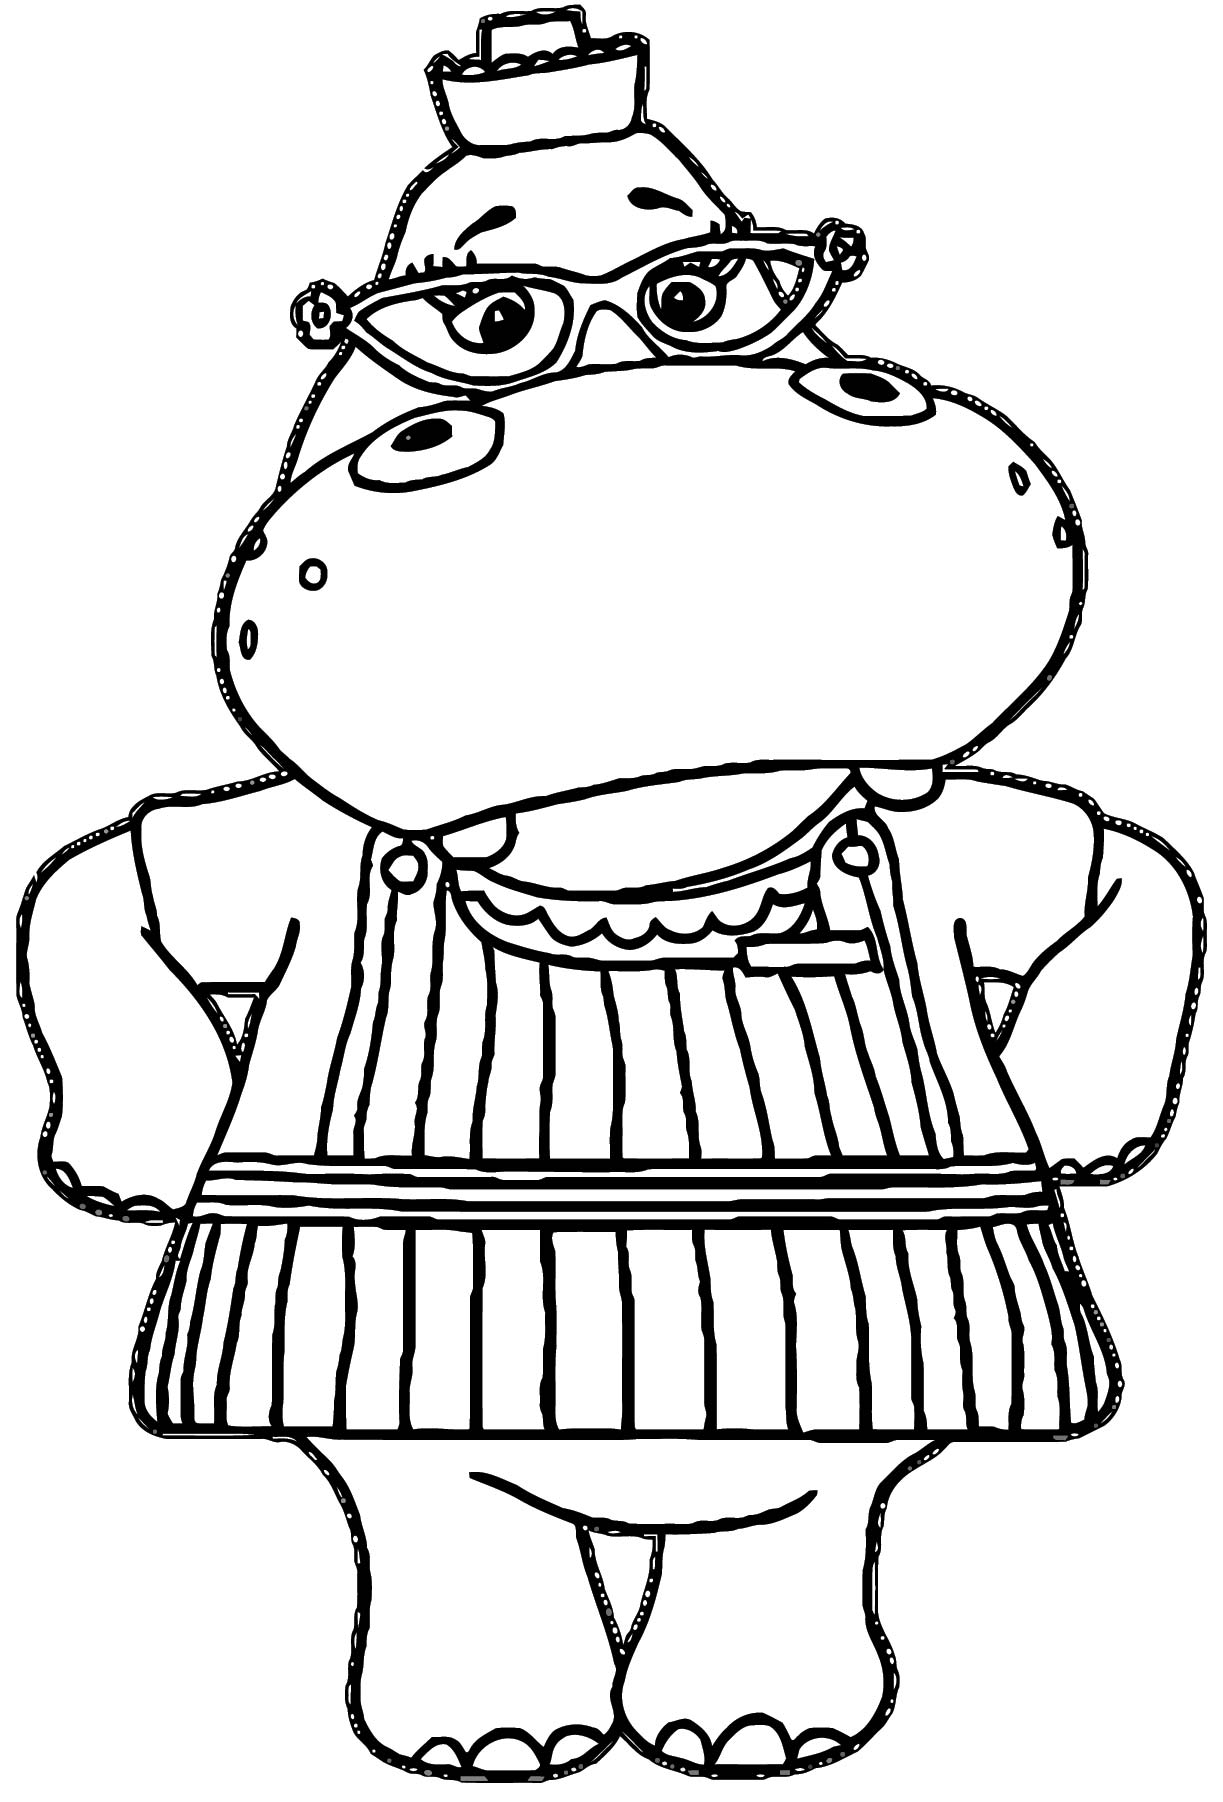 Hallie Coloring Page Wecoloringpage Com